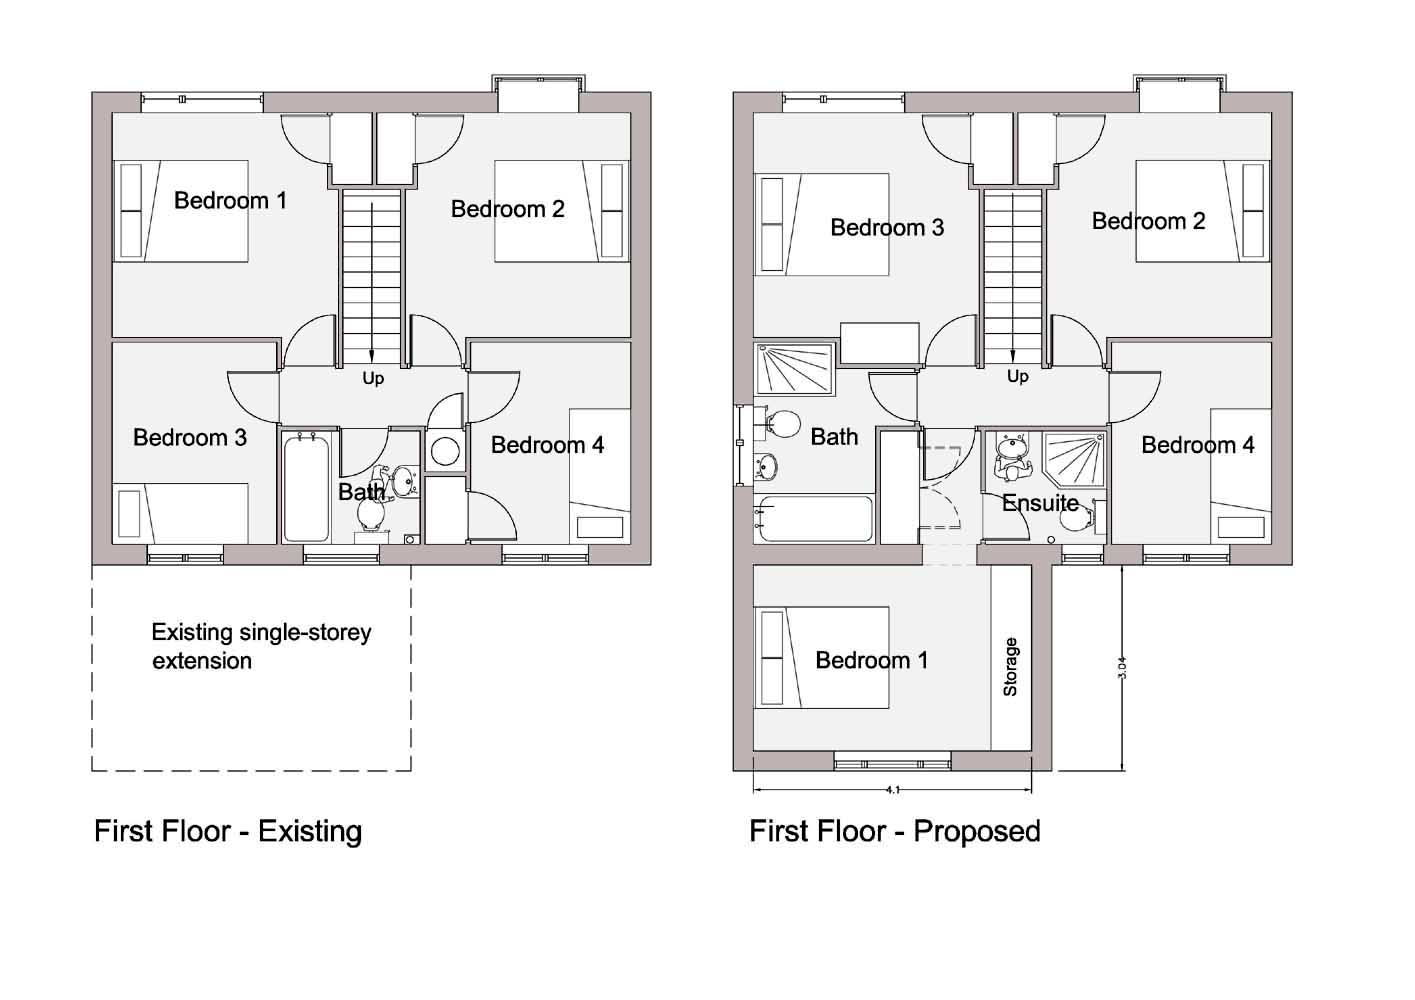 nice house plans drawings #2: unique stone house plans two story five bedroom 5 bath basement 3